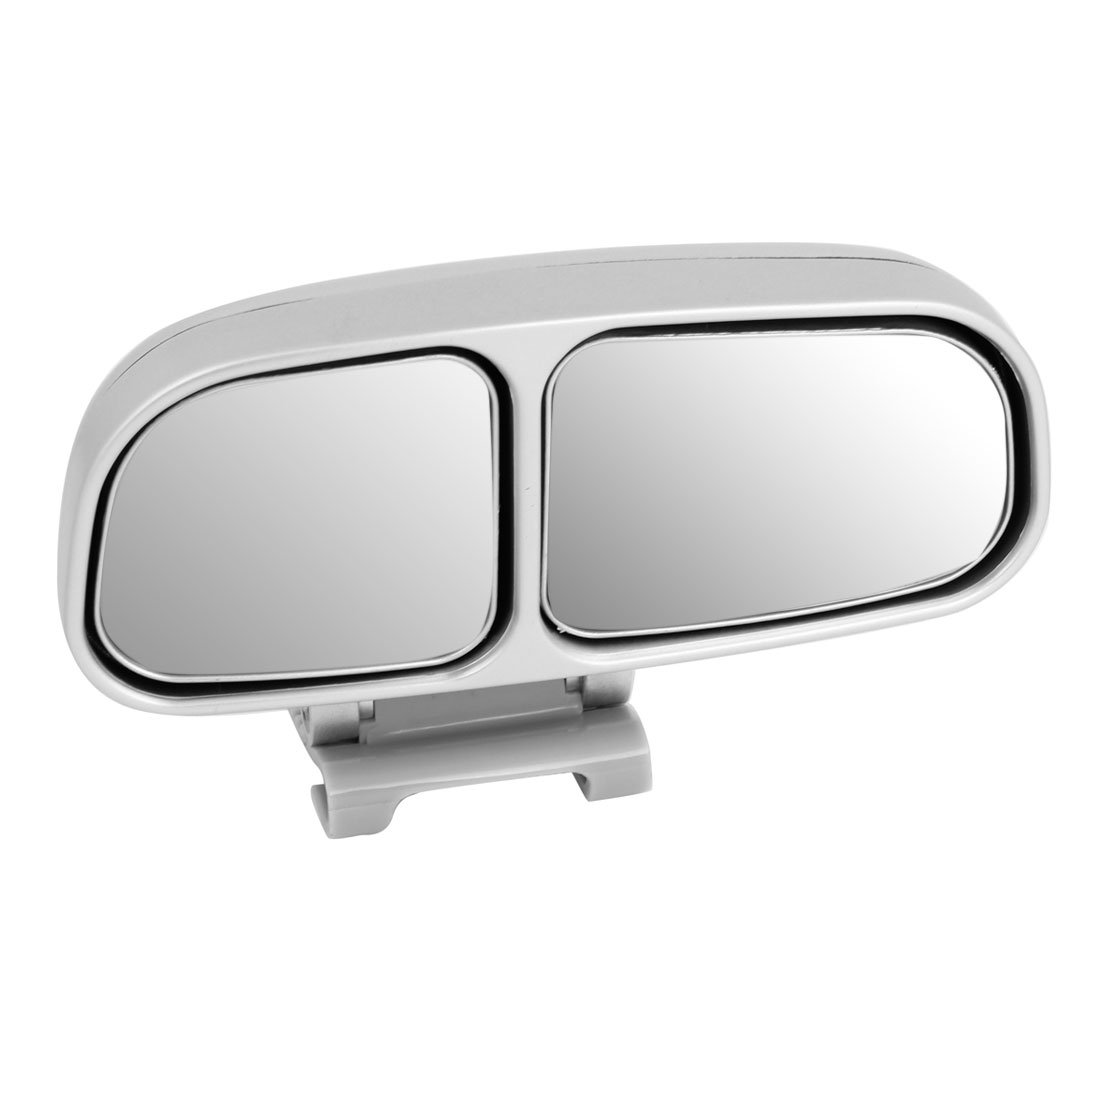 Gray Frame Right Side Rear View Blind Spot Rearview Mirror for Truck